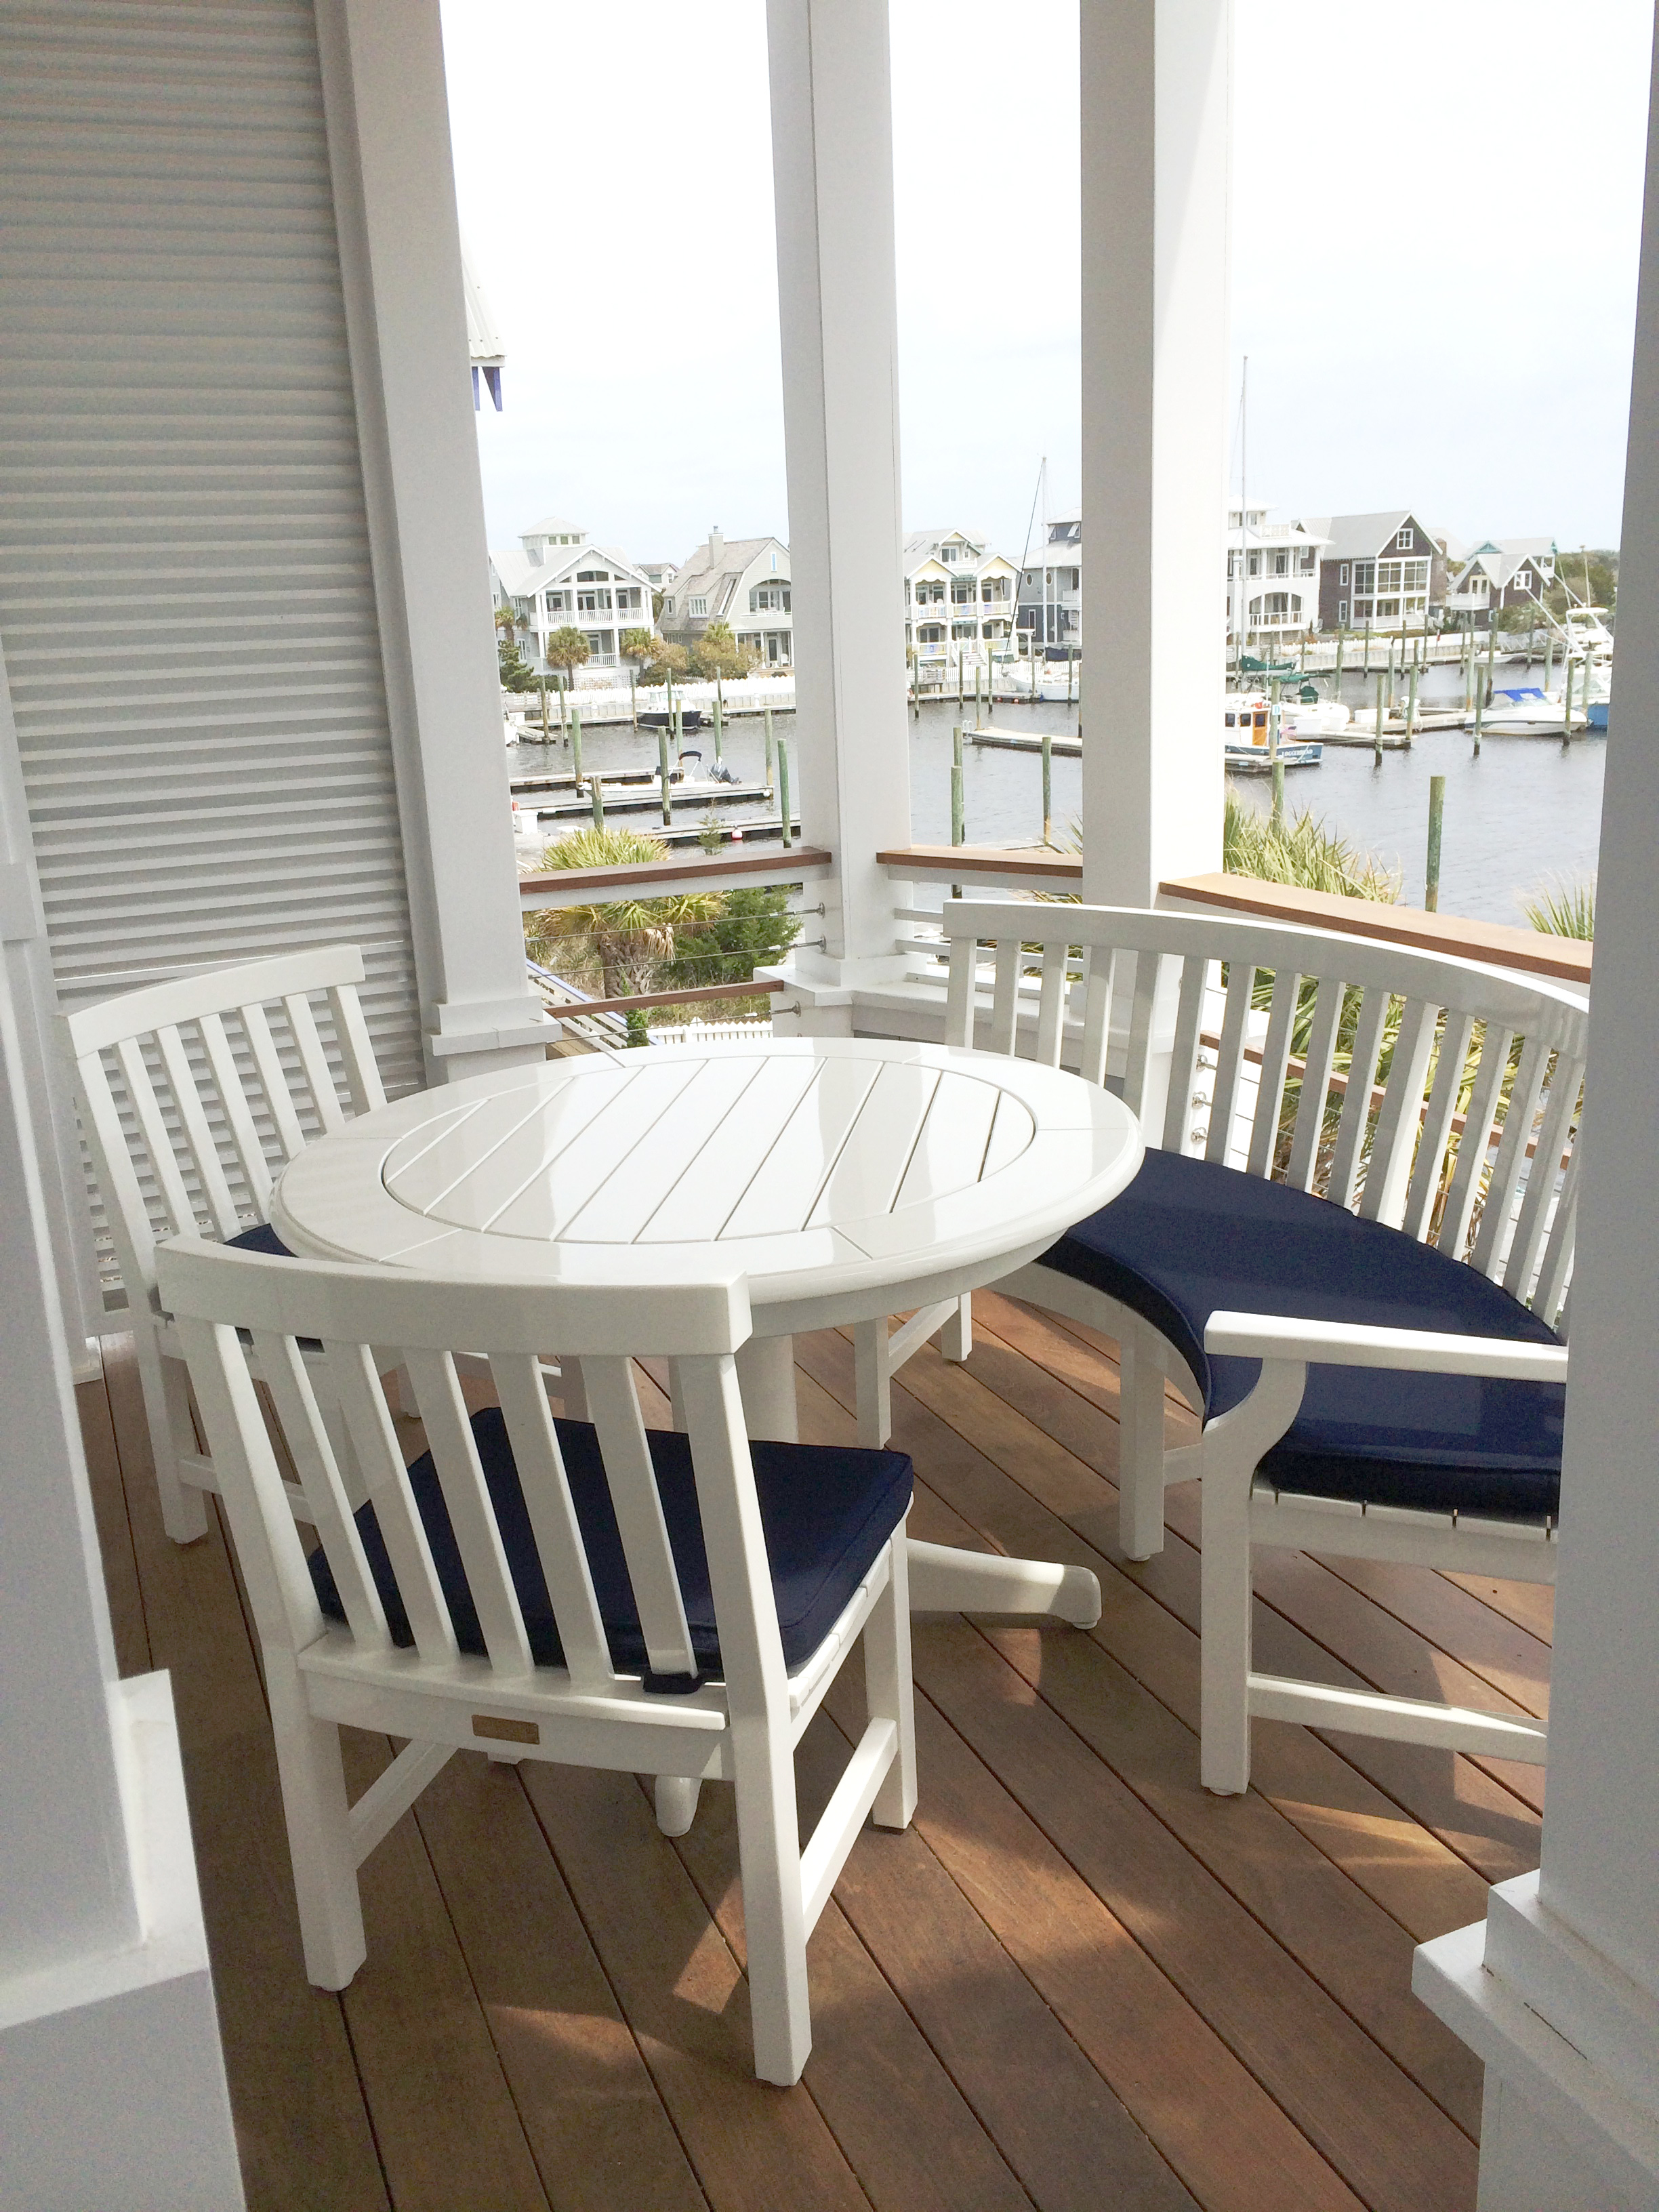 Weatherend table, chairs and bench in the outdoor breakfast nook.